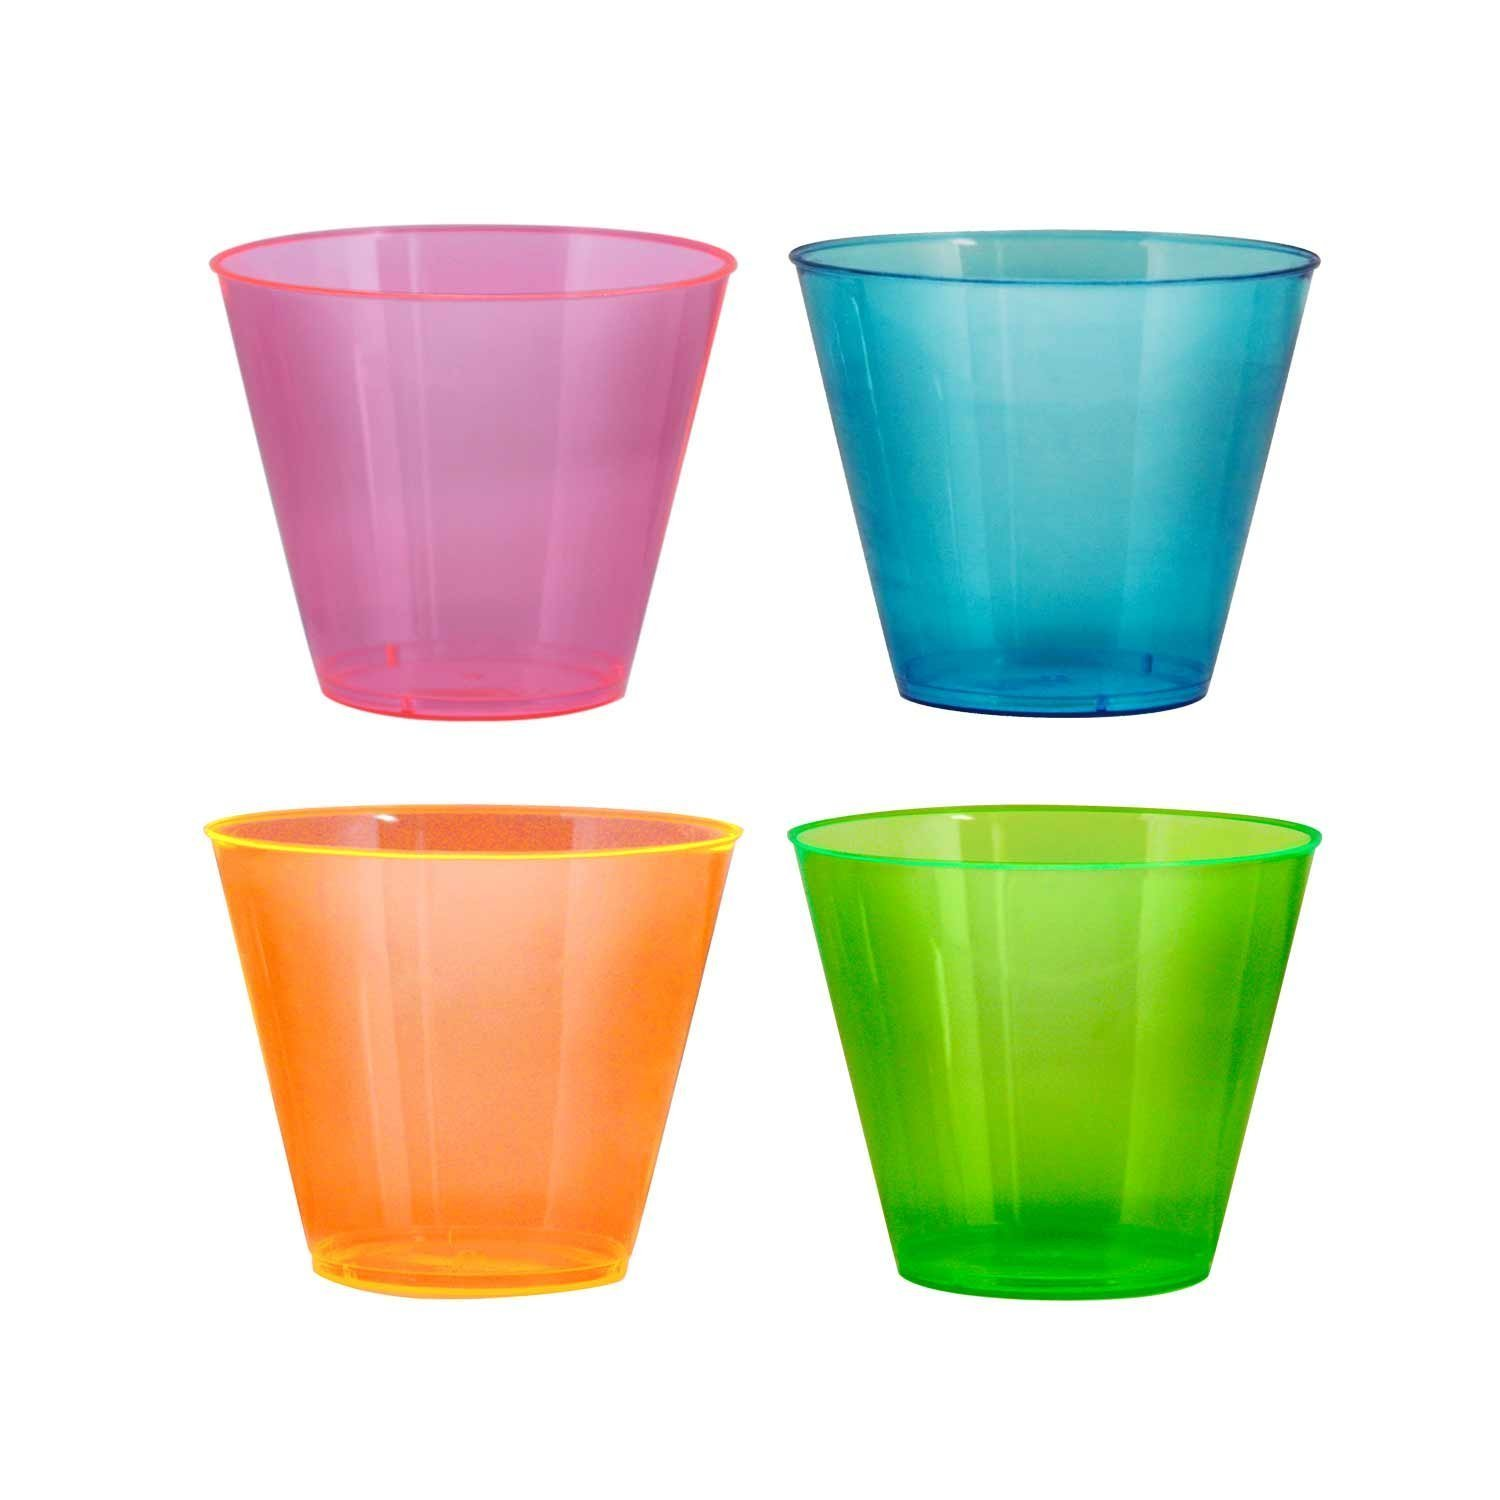 Party Essentials N92590 Hard Plastic Party Cups/Tumblers, 9-Ounce Capacity, Assorted Neon Colors (Pack of 500)